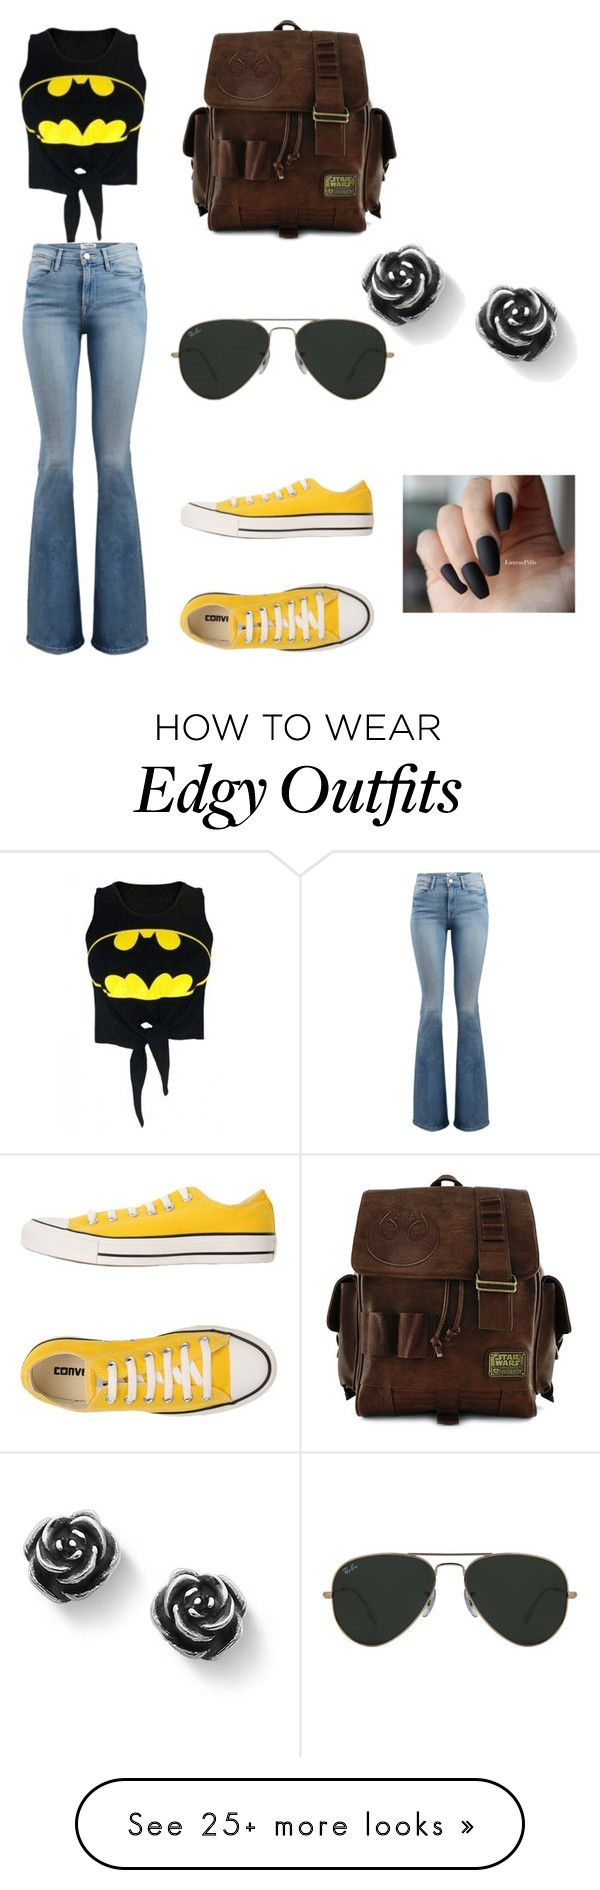 """Nerd Chic"" by coamhielee on Polyvore featuring WithChic, Frame, Converse, Loungefly and Ray-Ban"